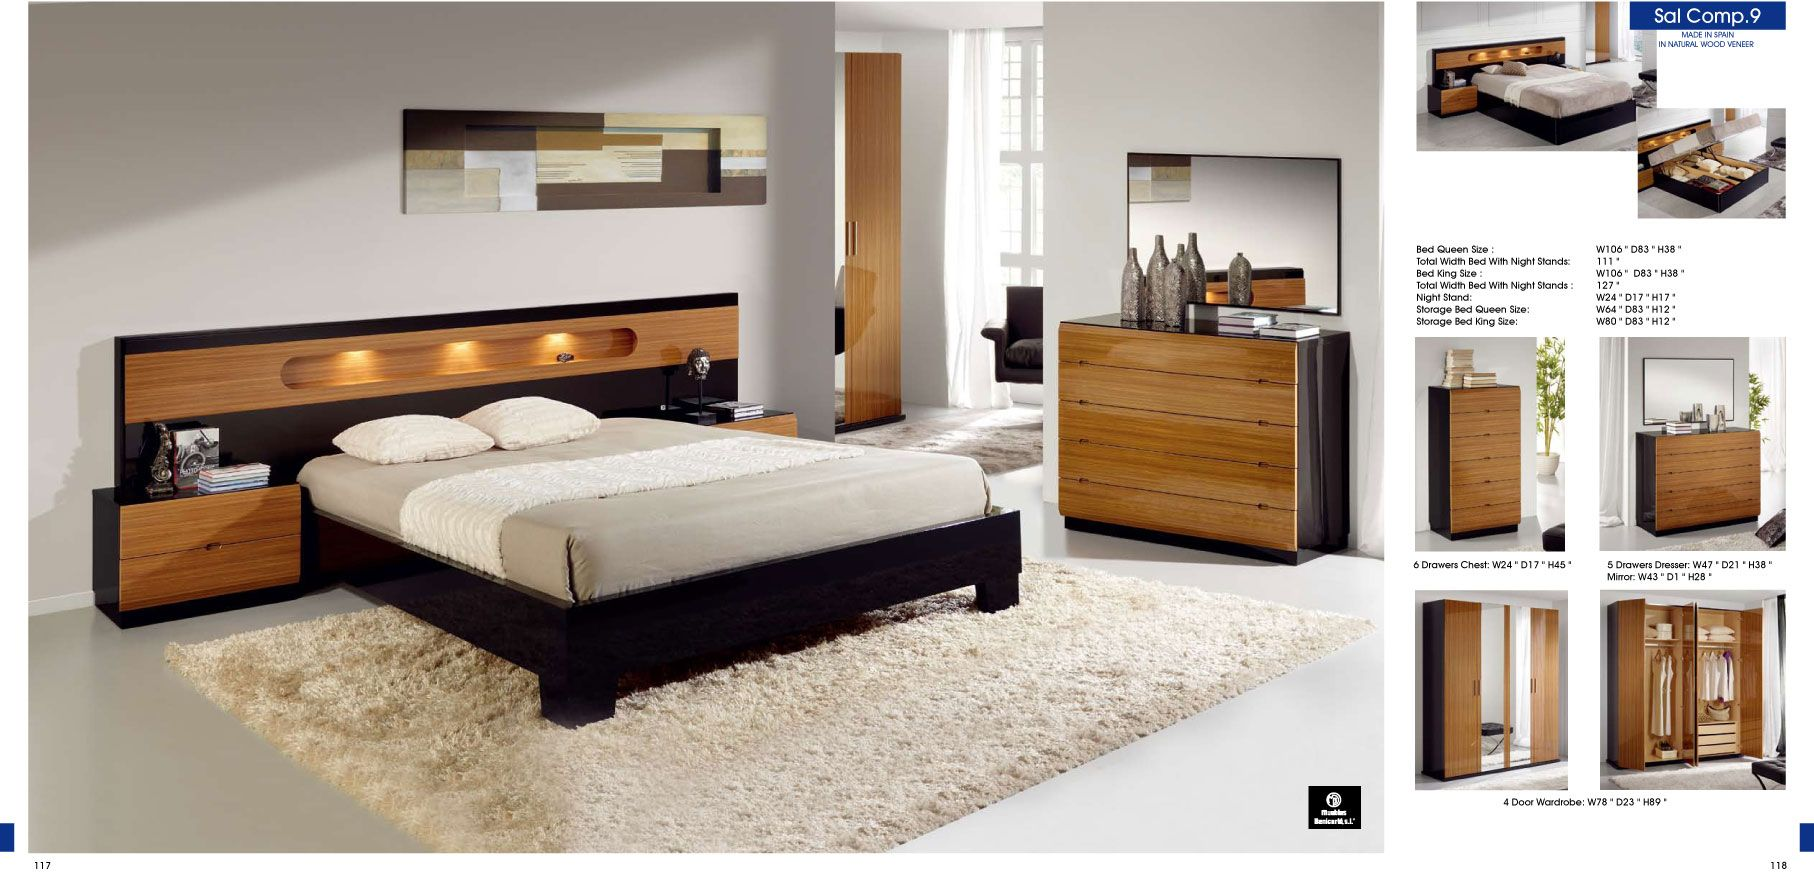 Elegant Cheap King Size Bedroom Sets 5 Ikea Bedroom Sets Catalog For Bedrooms  Sets